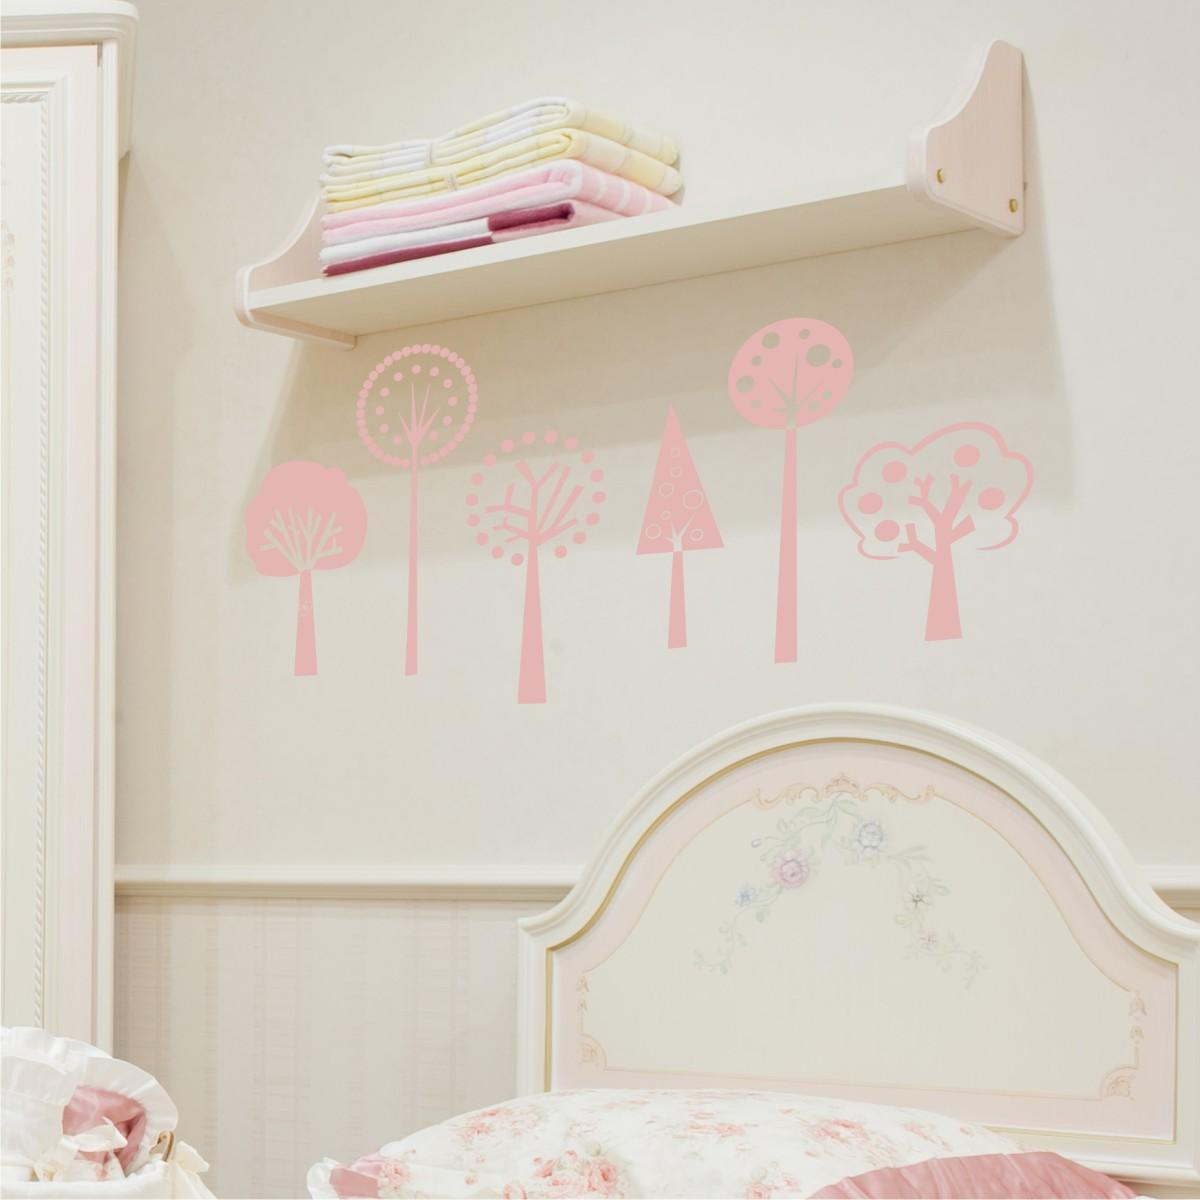 whimsical tree collection wall quotes u2122 wall art decal